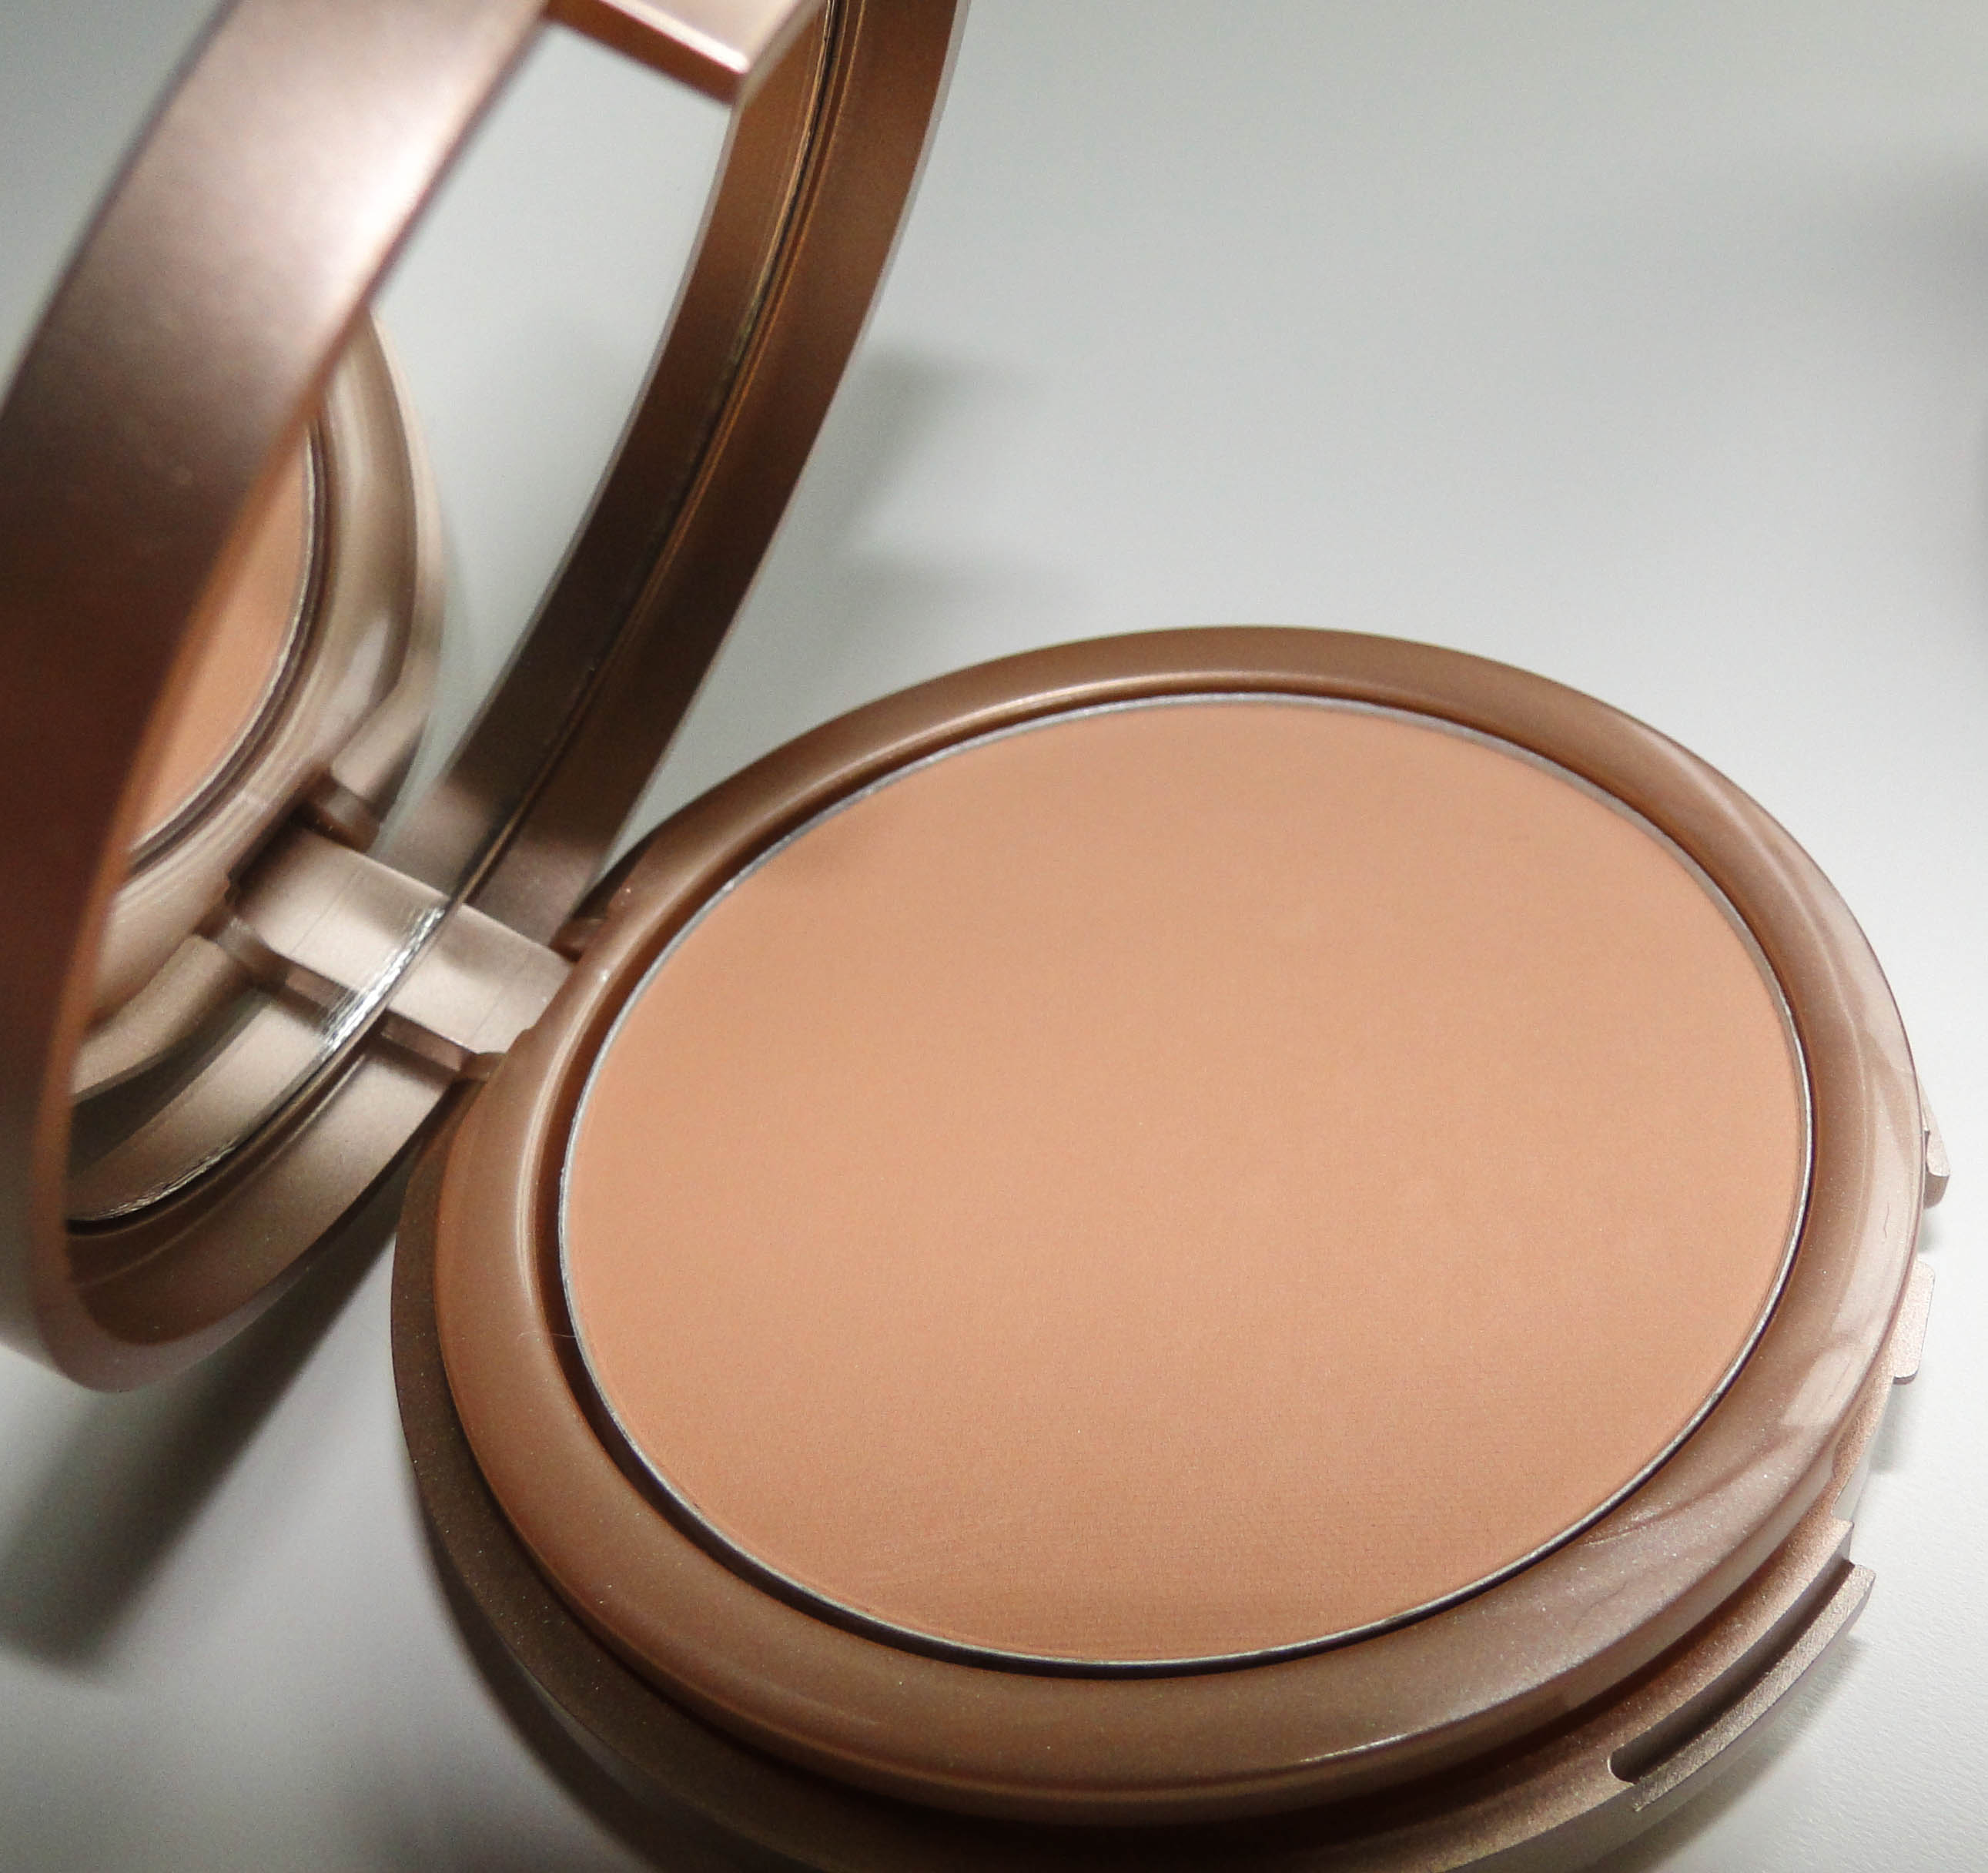 Kiko Life in Rio Sunproof Powder Foundation 3